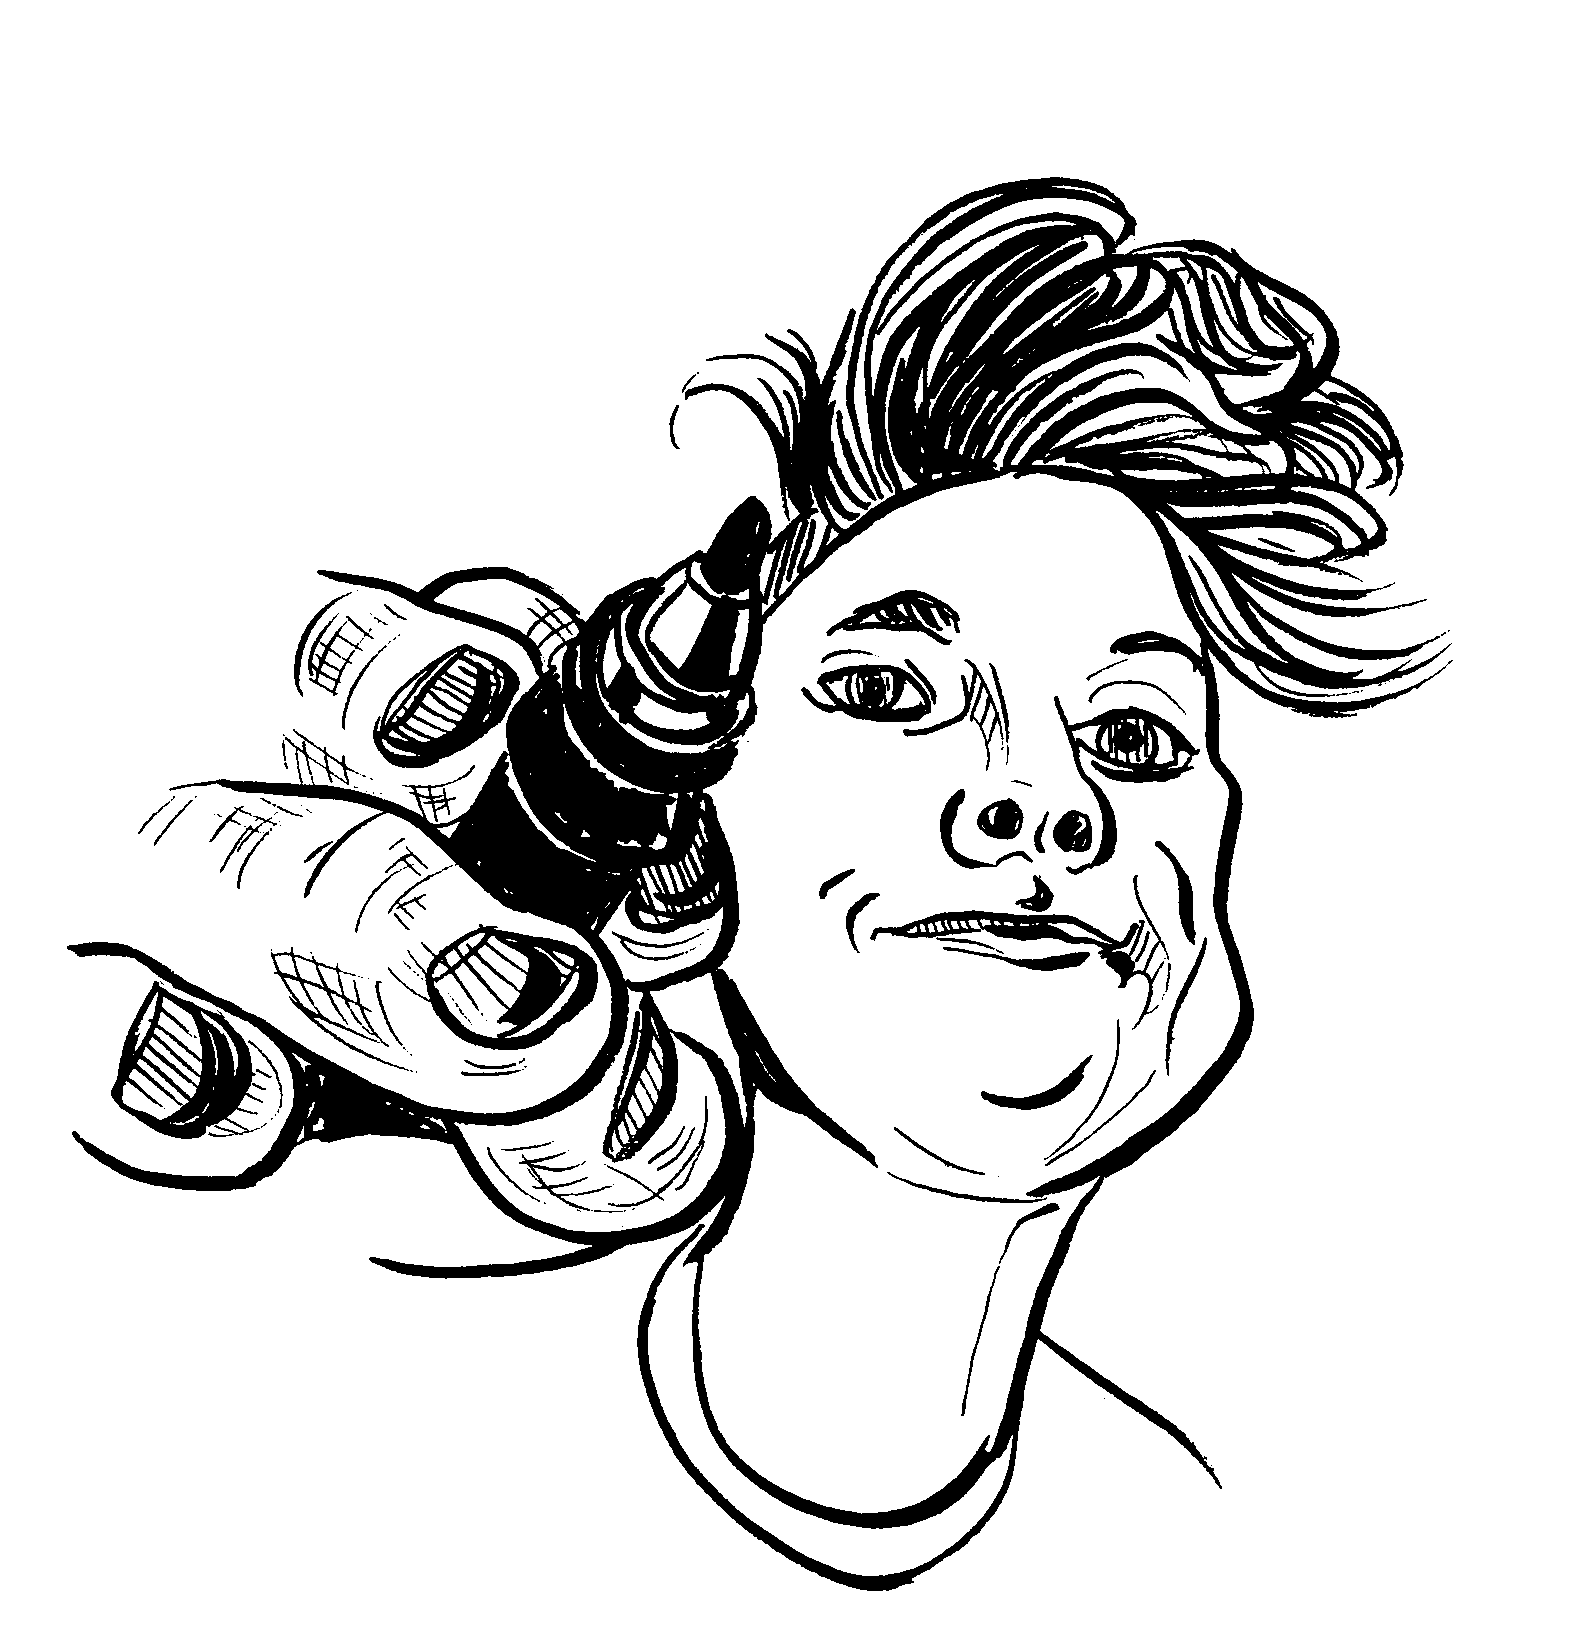 tara-author-portrait-2.png